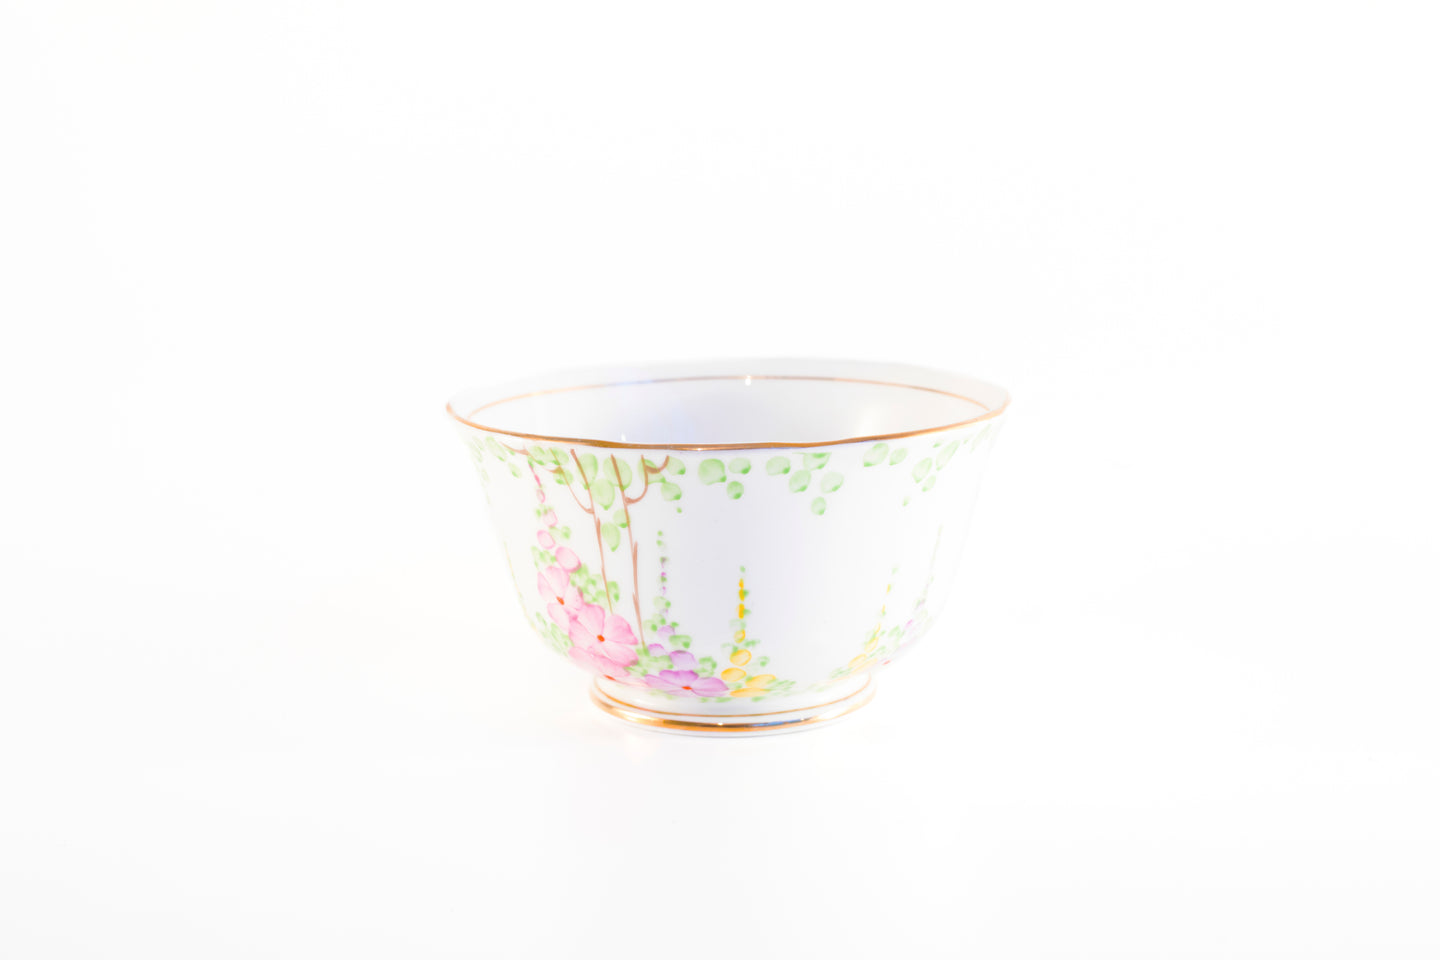 white vintage unique tea party tea sweet sugar sister simple rich pink party mother green gift flower elegant decorative daughter cute classic chic chai cafe bowl bar